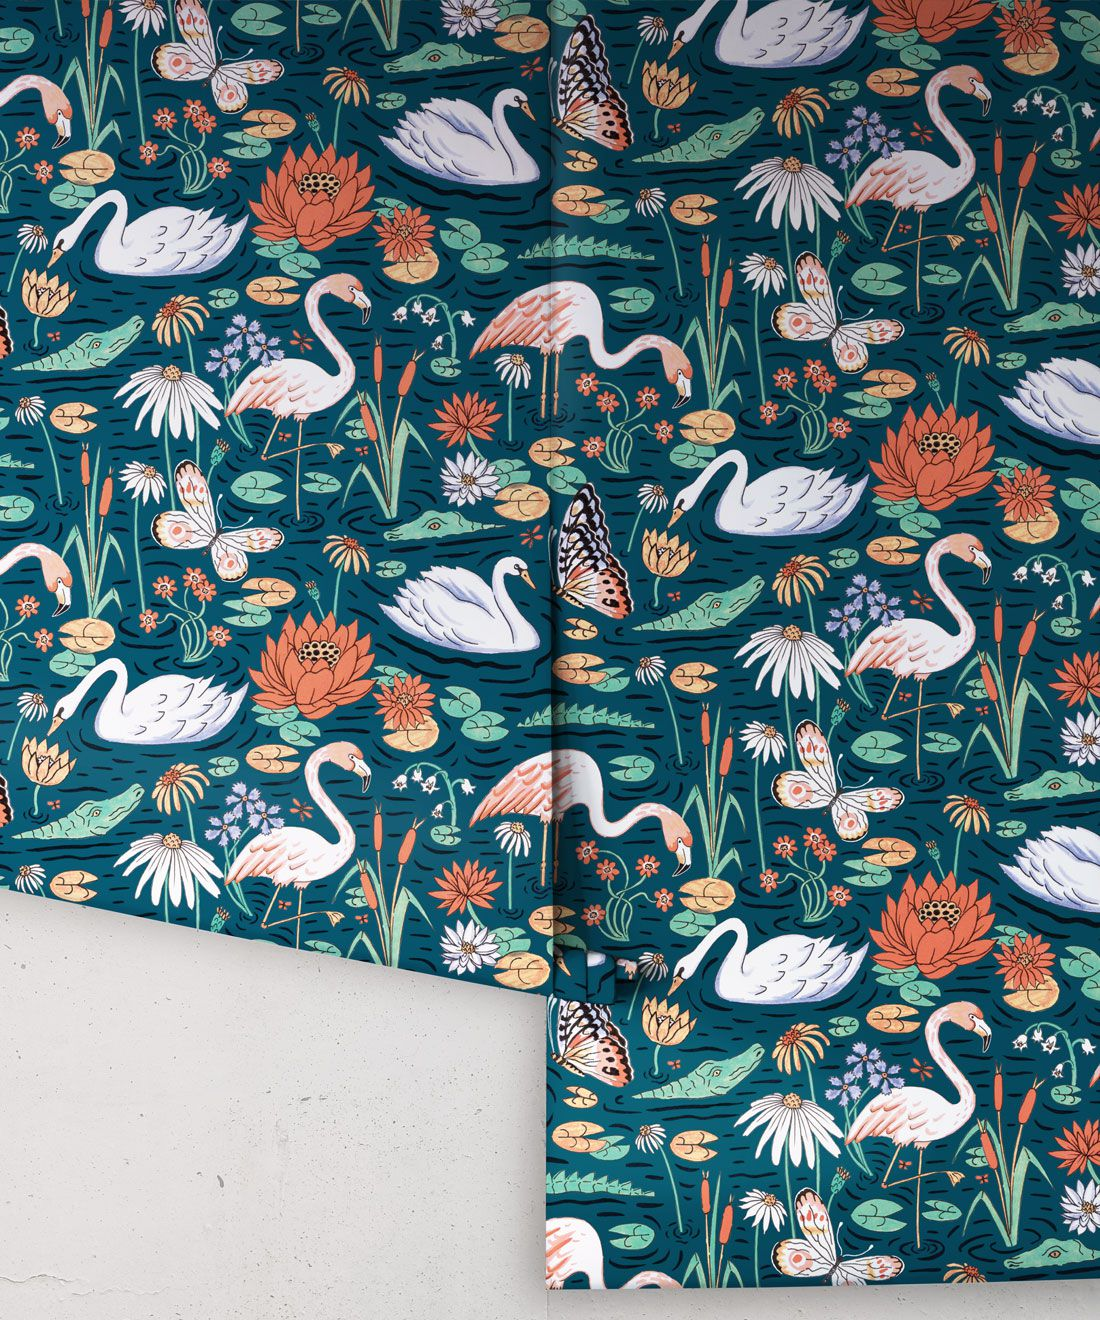 Pond Pattern Wallpaper featuring alligators, swans, flamingos and lily pads roll